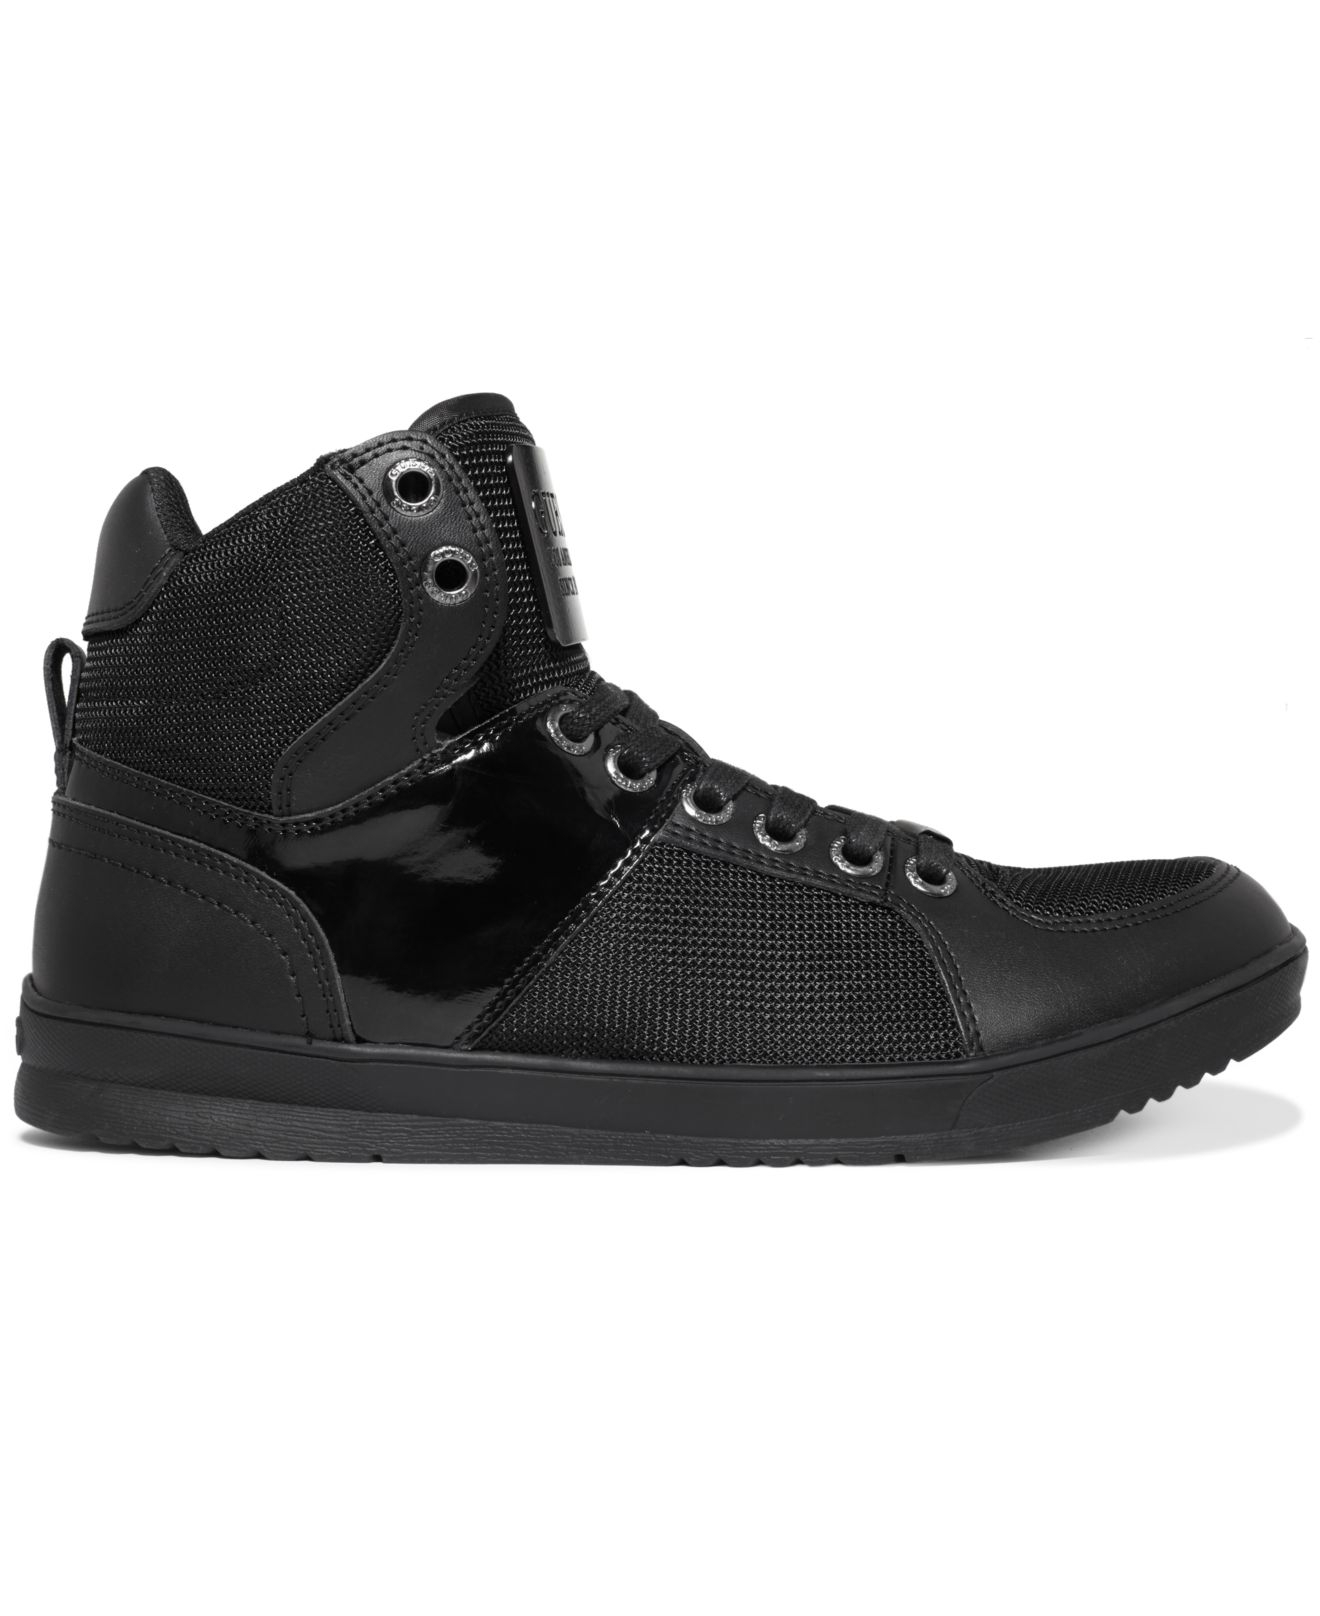 lyst guess trippy5 sneakers in black for men